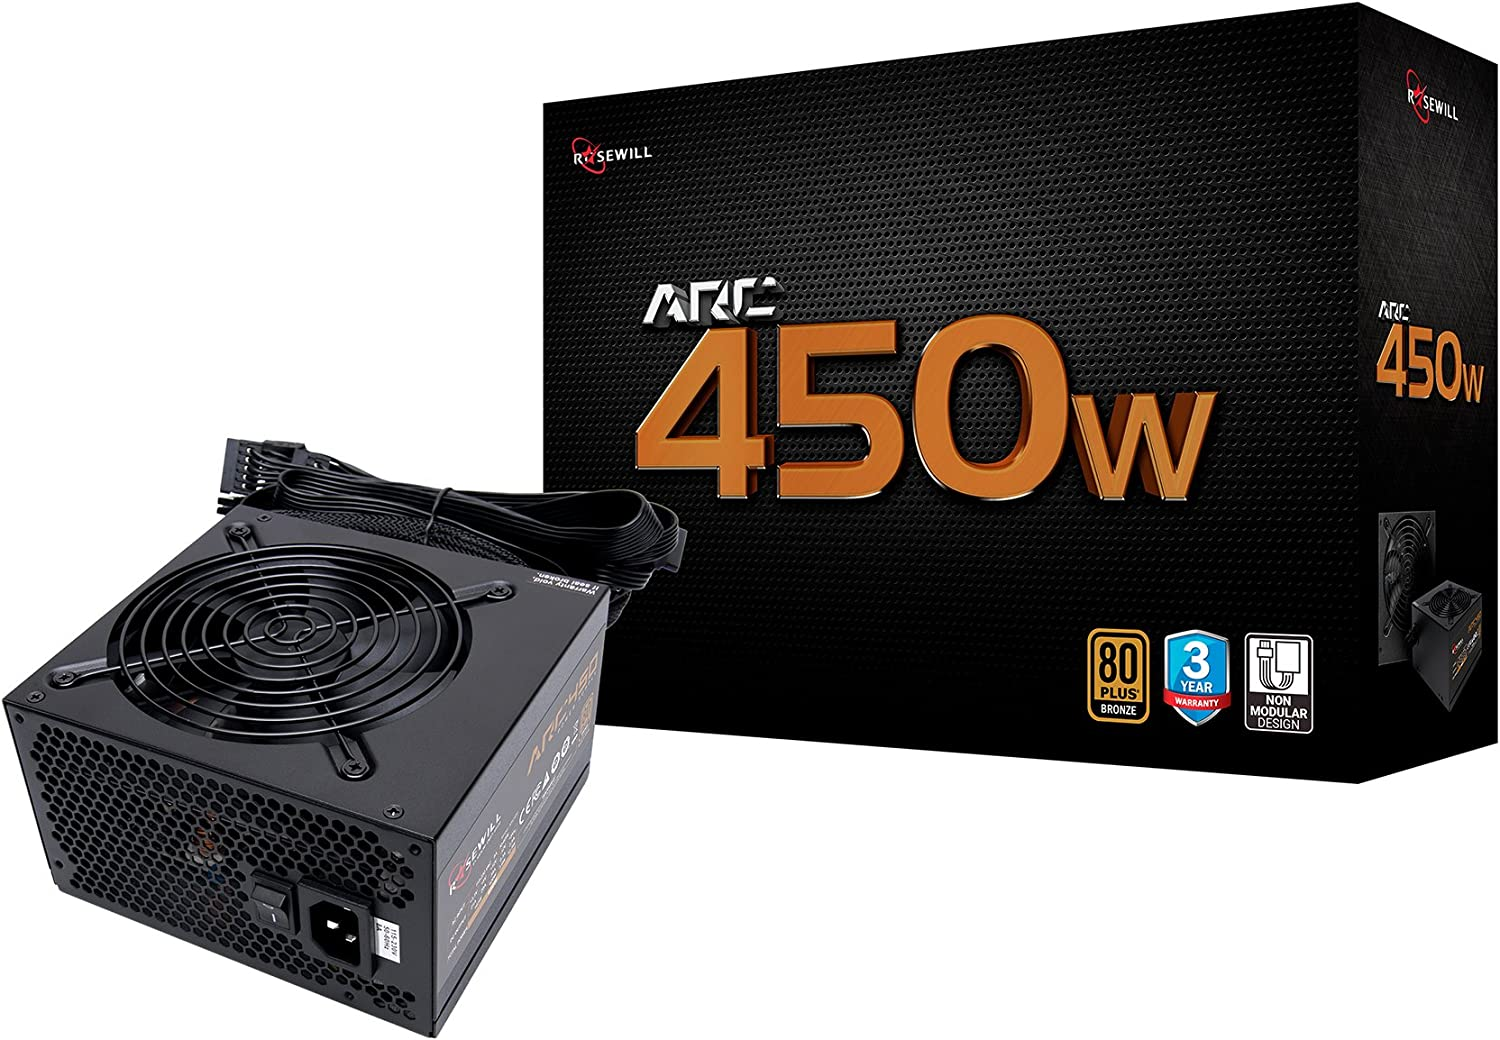 Rosewill Gaming Power Supply, Arc Series 450 Watt (450W) 80 Plus Bronze Certified PSU with Silent 120mm Fan and Auto Fan Speed Control, 3 Year Warranty - ARC450